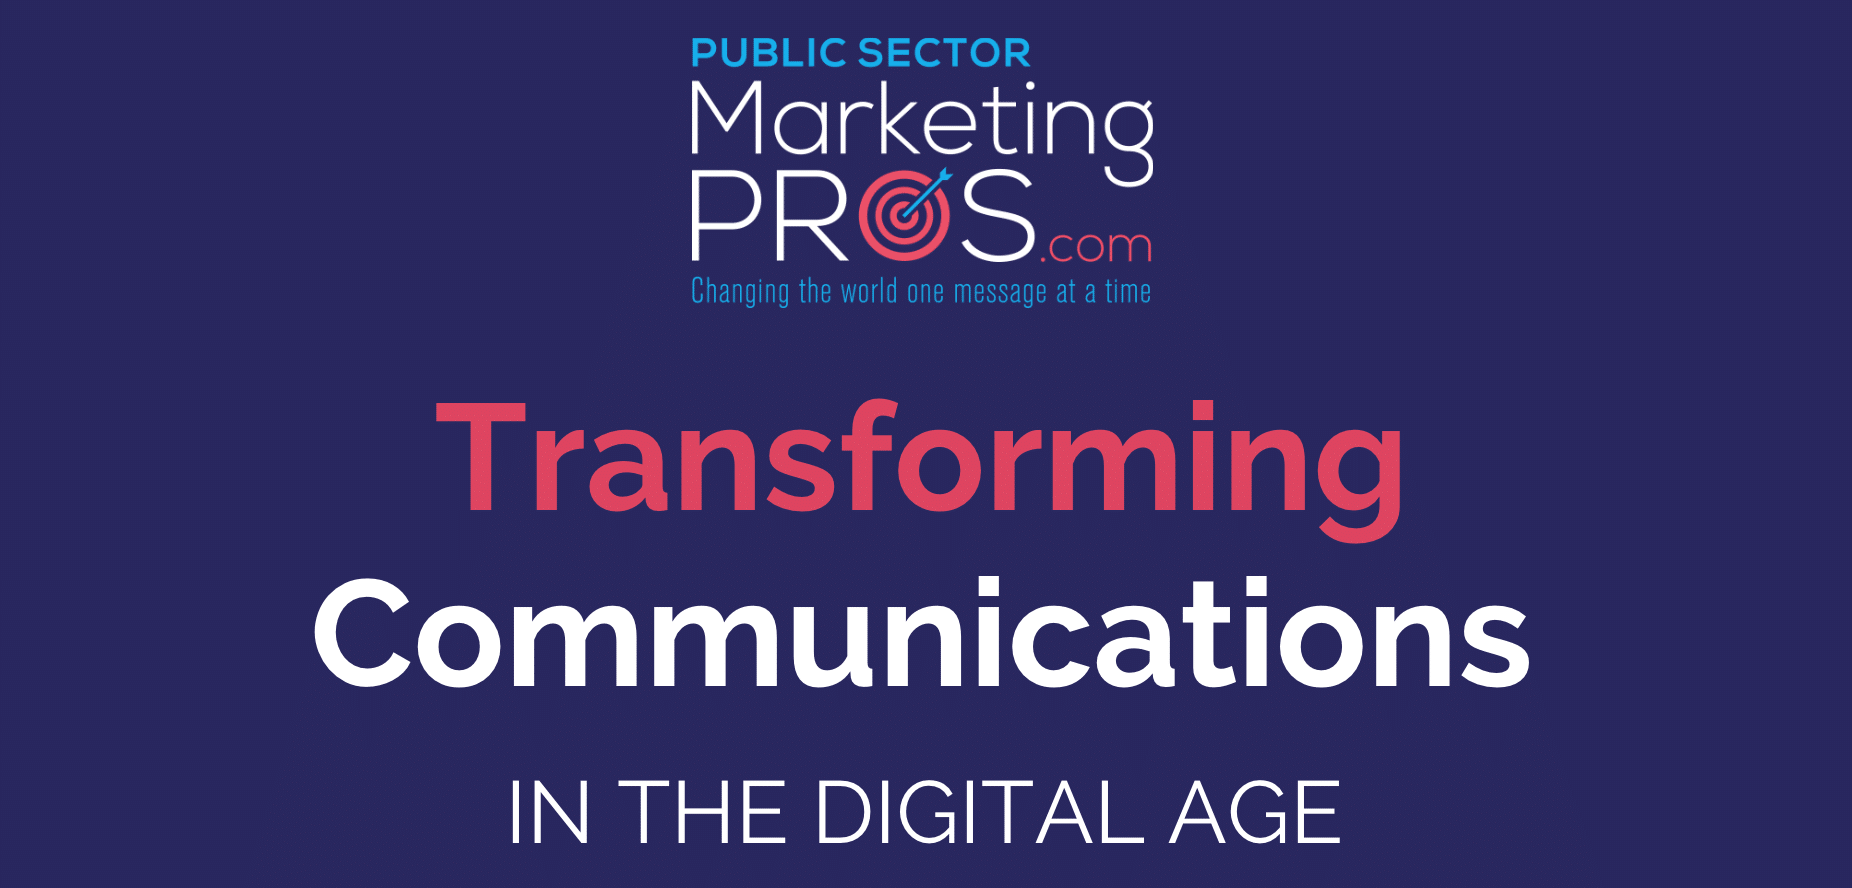 Transforming Communications in the Digital Age